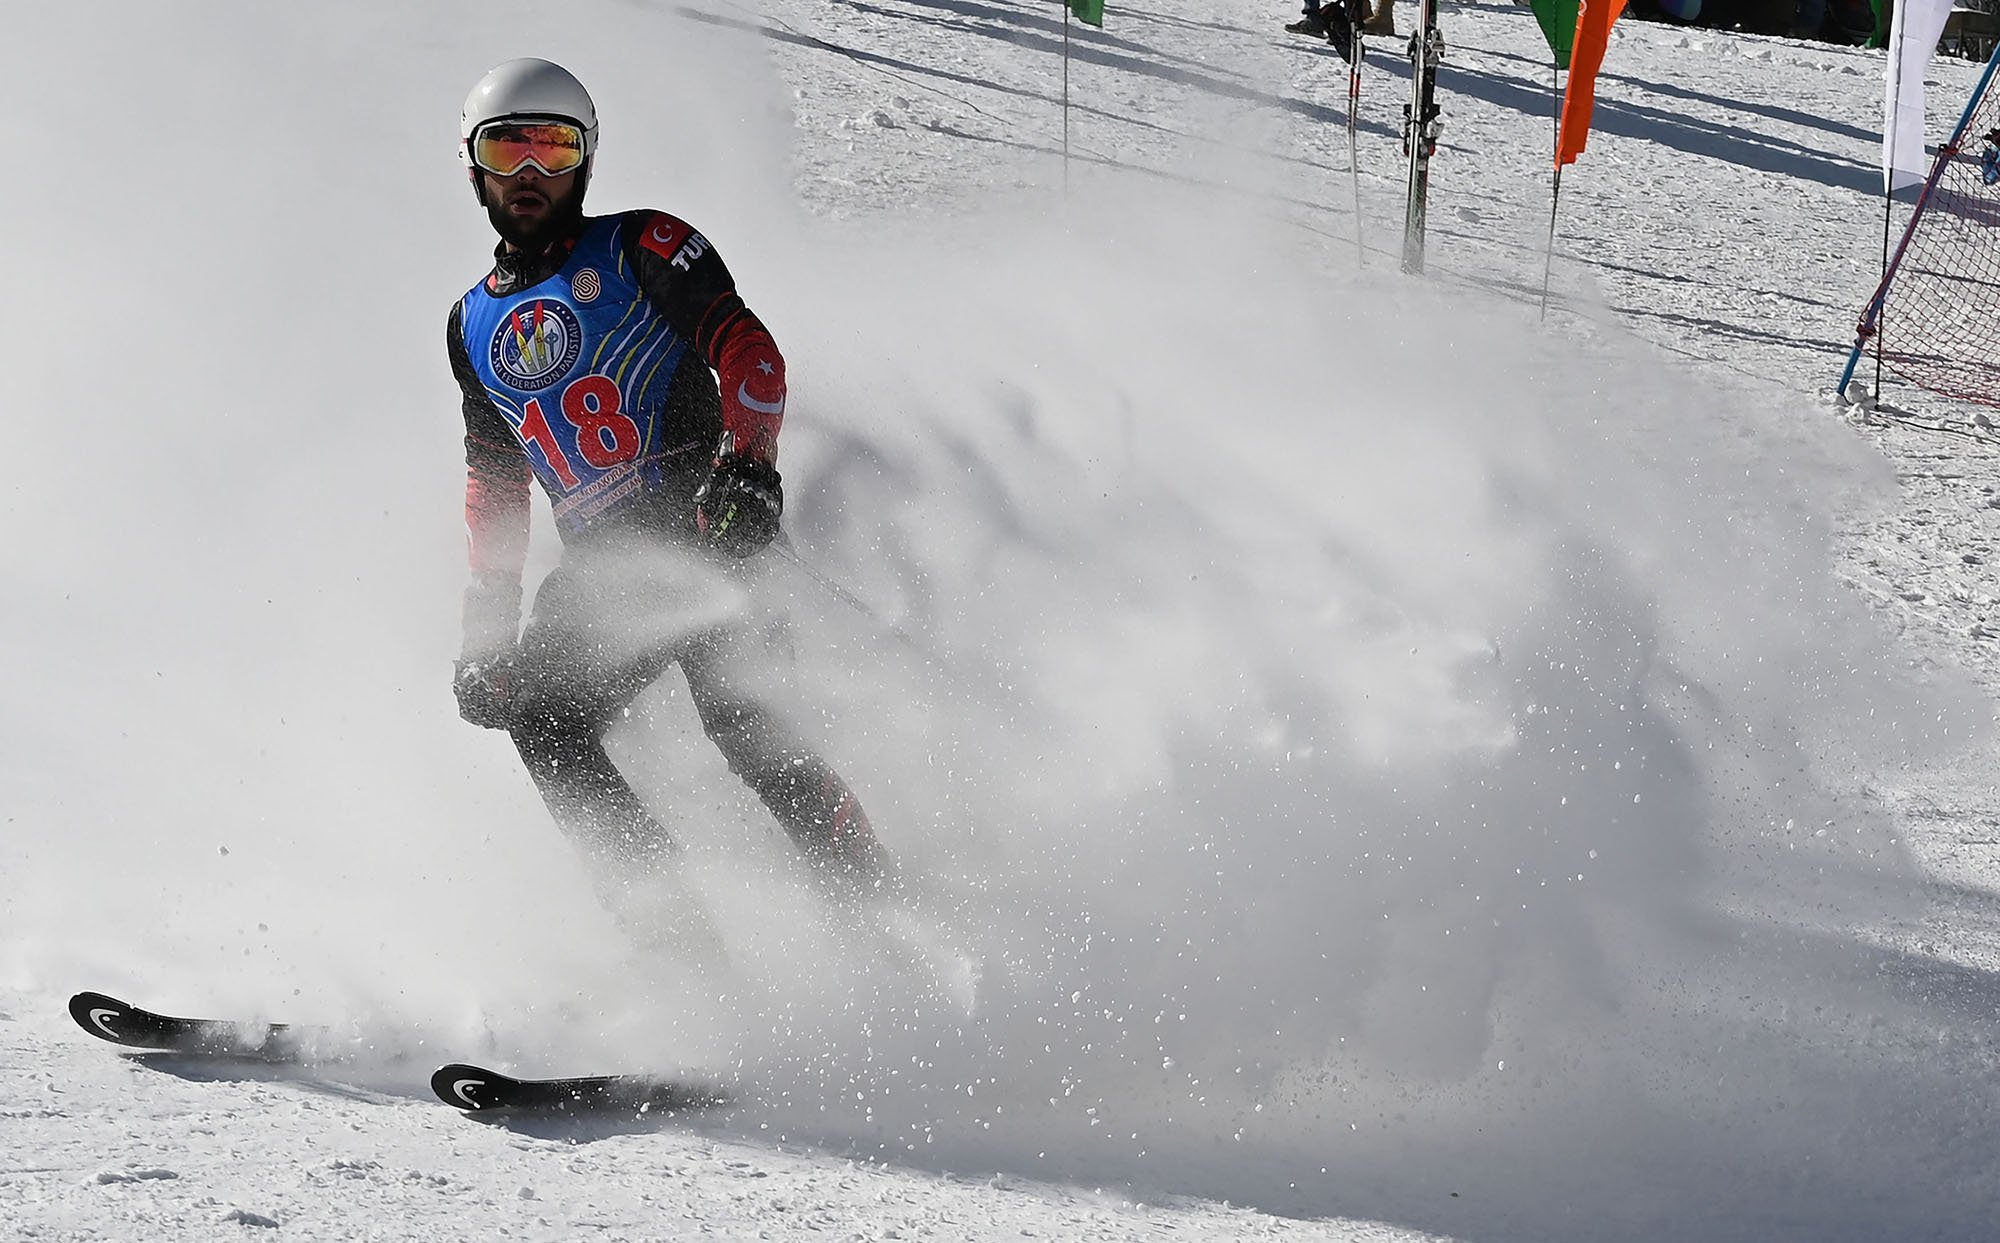 In this picture taken on January 29, 2019, Turkish skier Berkin Usta takes part in the CAS Karakoram International Alpine Ski Cup, at the Pakistan Air Force-owned and operated Naltar Ski Resort, some 25km north of Gilgit in Pakistan´s remote mountainous north. Photo AFP